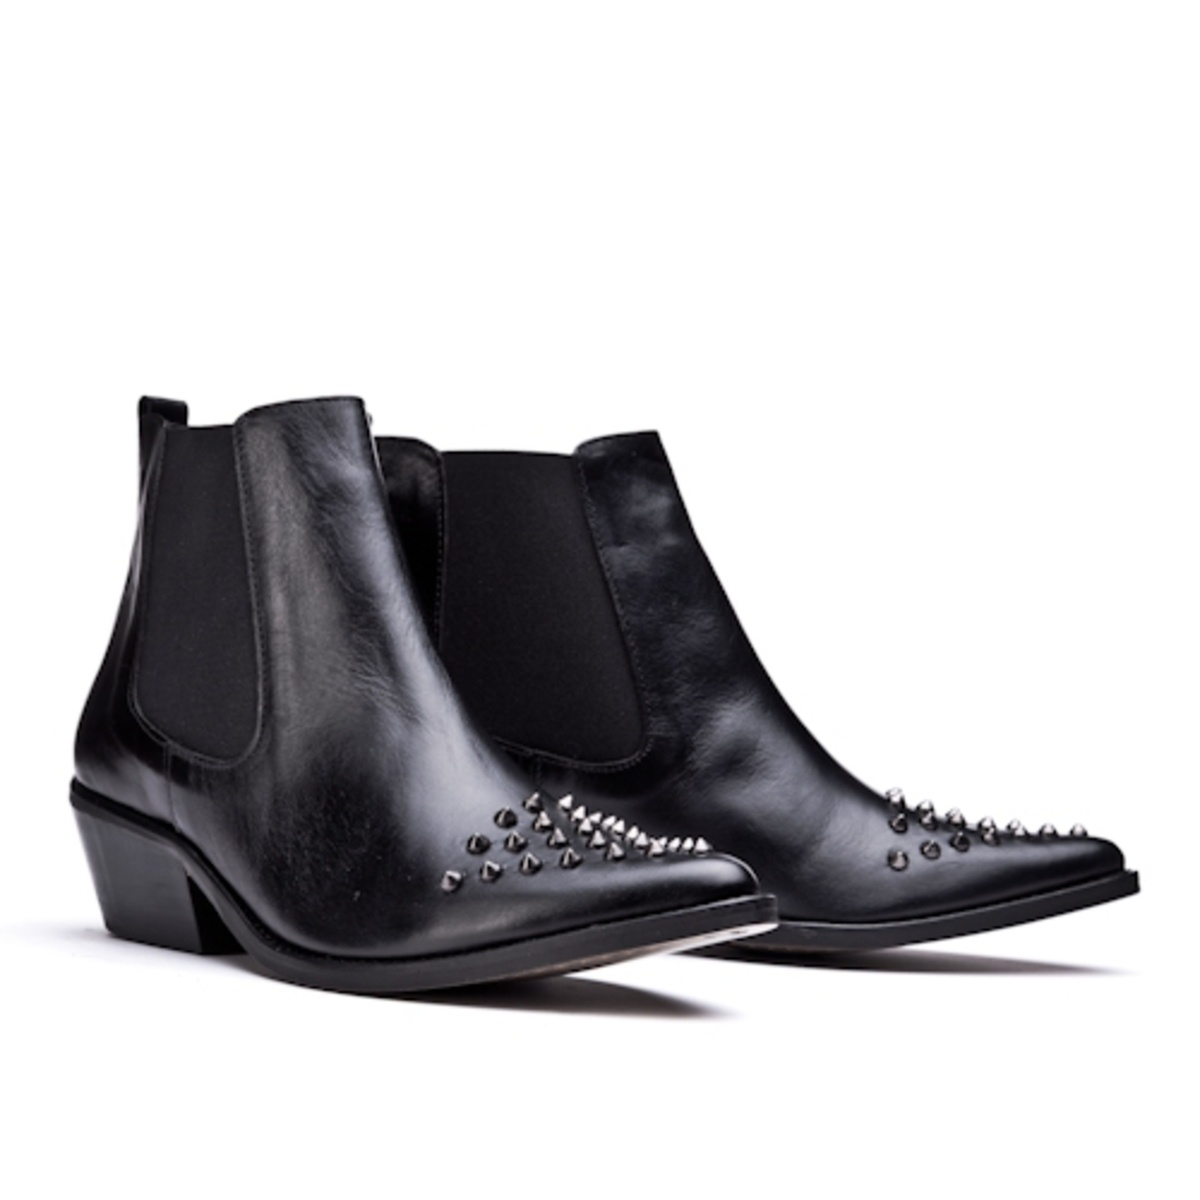 IT ROSIE BLACK BOOTS | GIRISSIMA.COM - Collectible fashion to love and to last